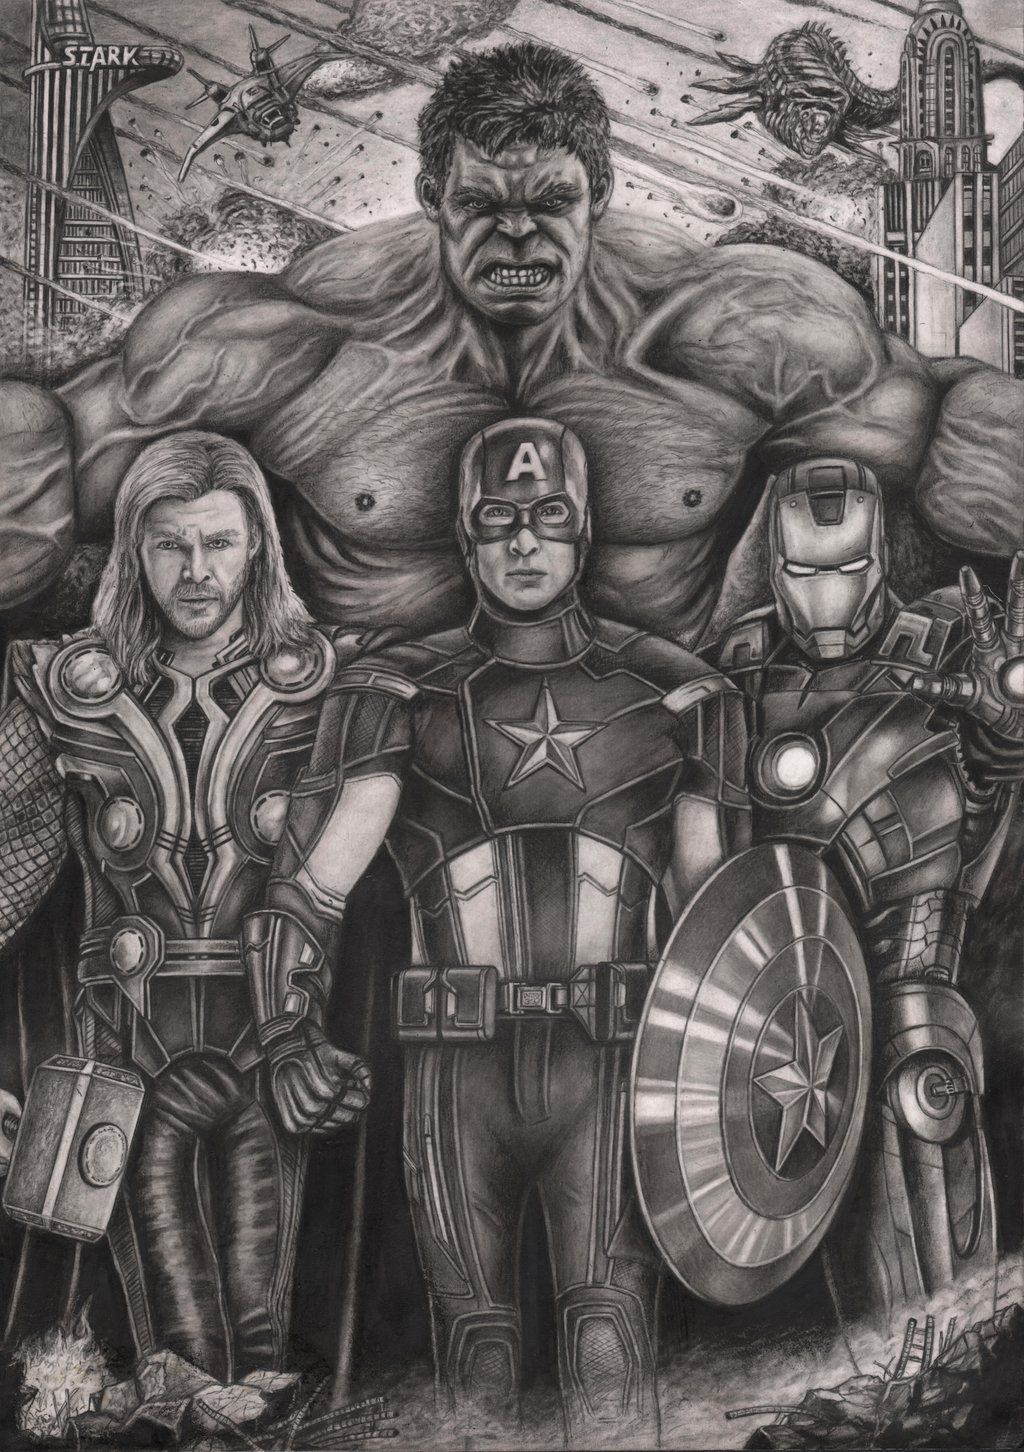 This Is Awesome The Avengers Graphite Drawing By Pen Tacular Artist Deviantart Com On Deviantart Avengers Drawings Graphite Drawings Avengers Art